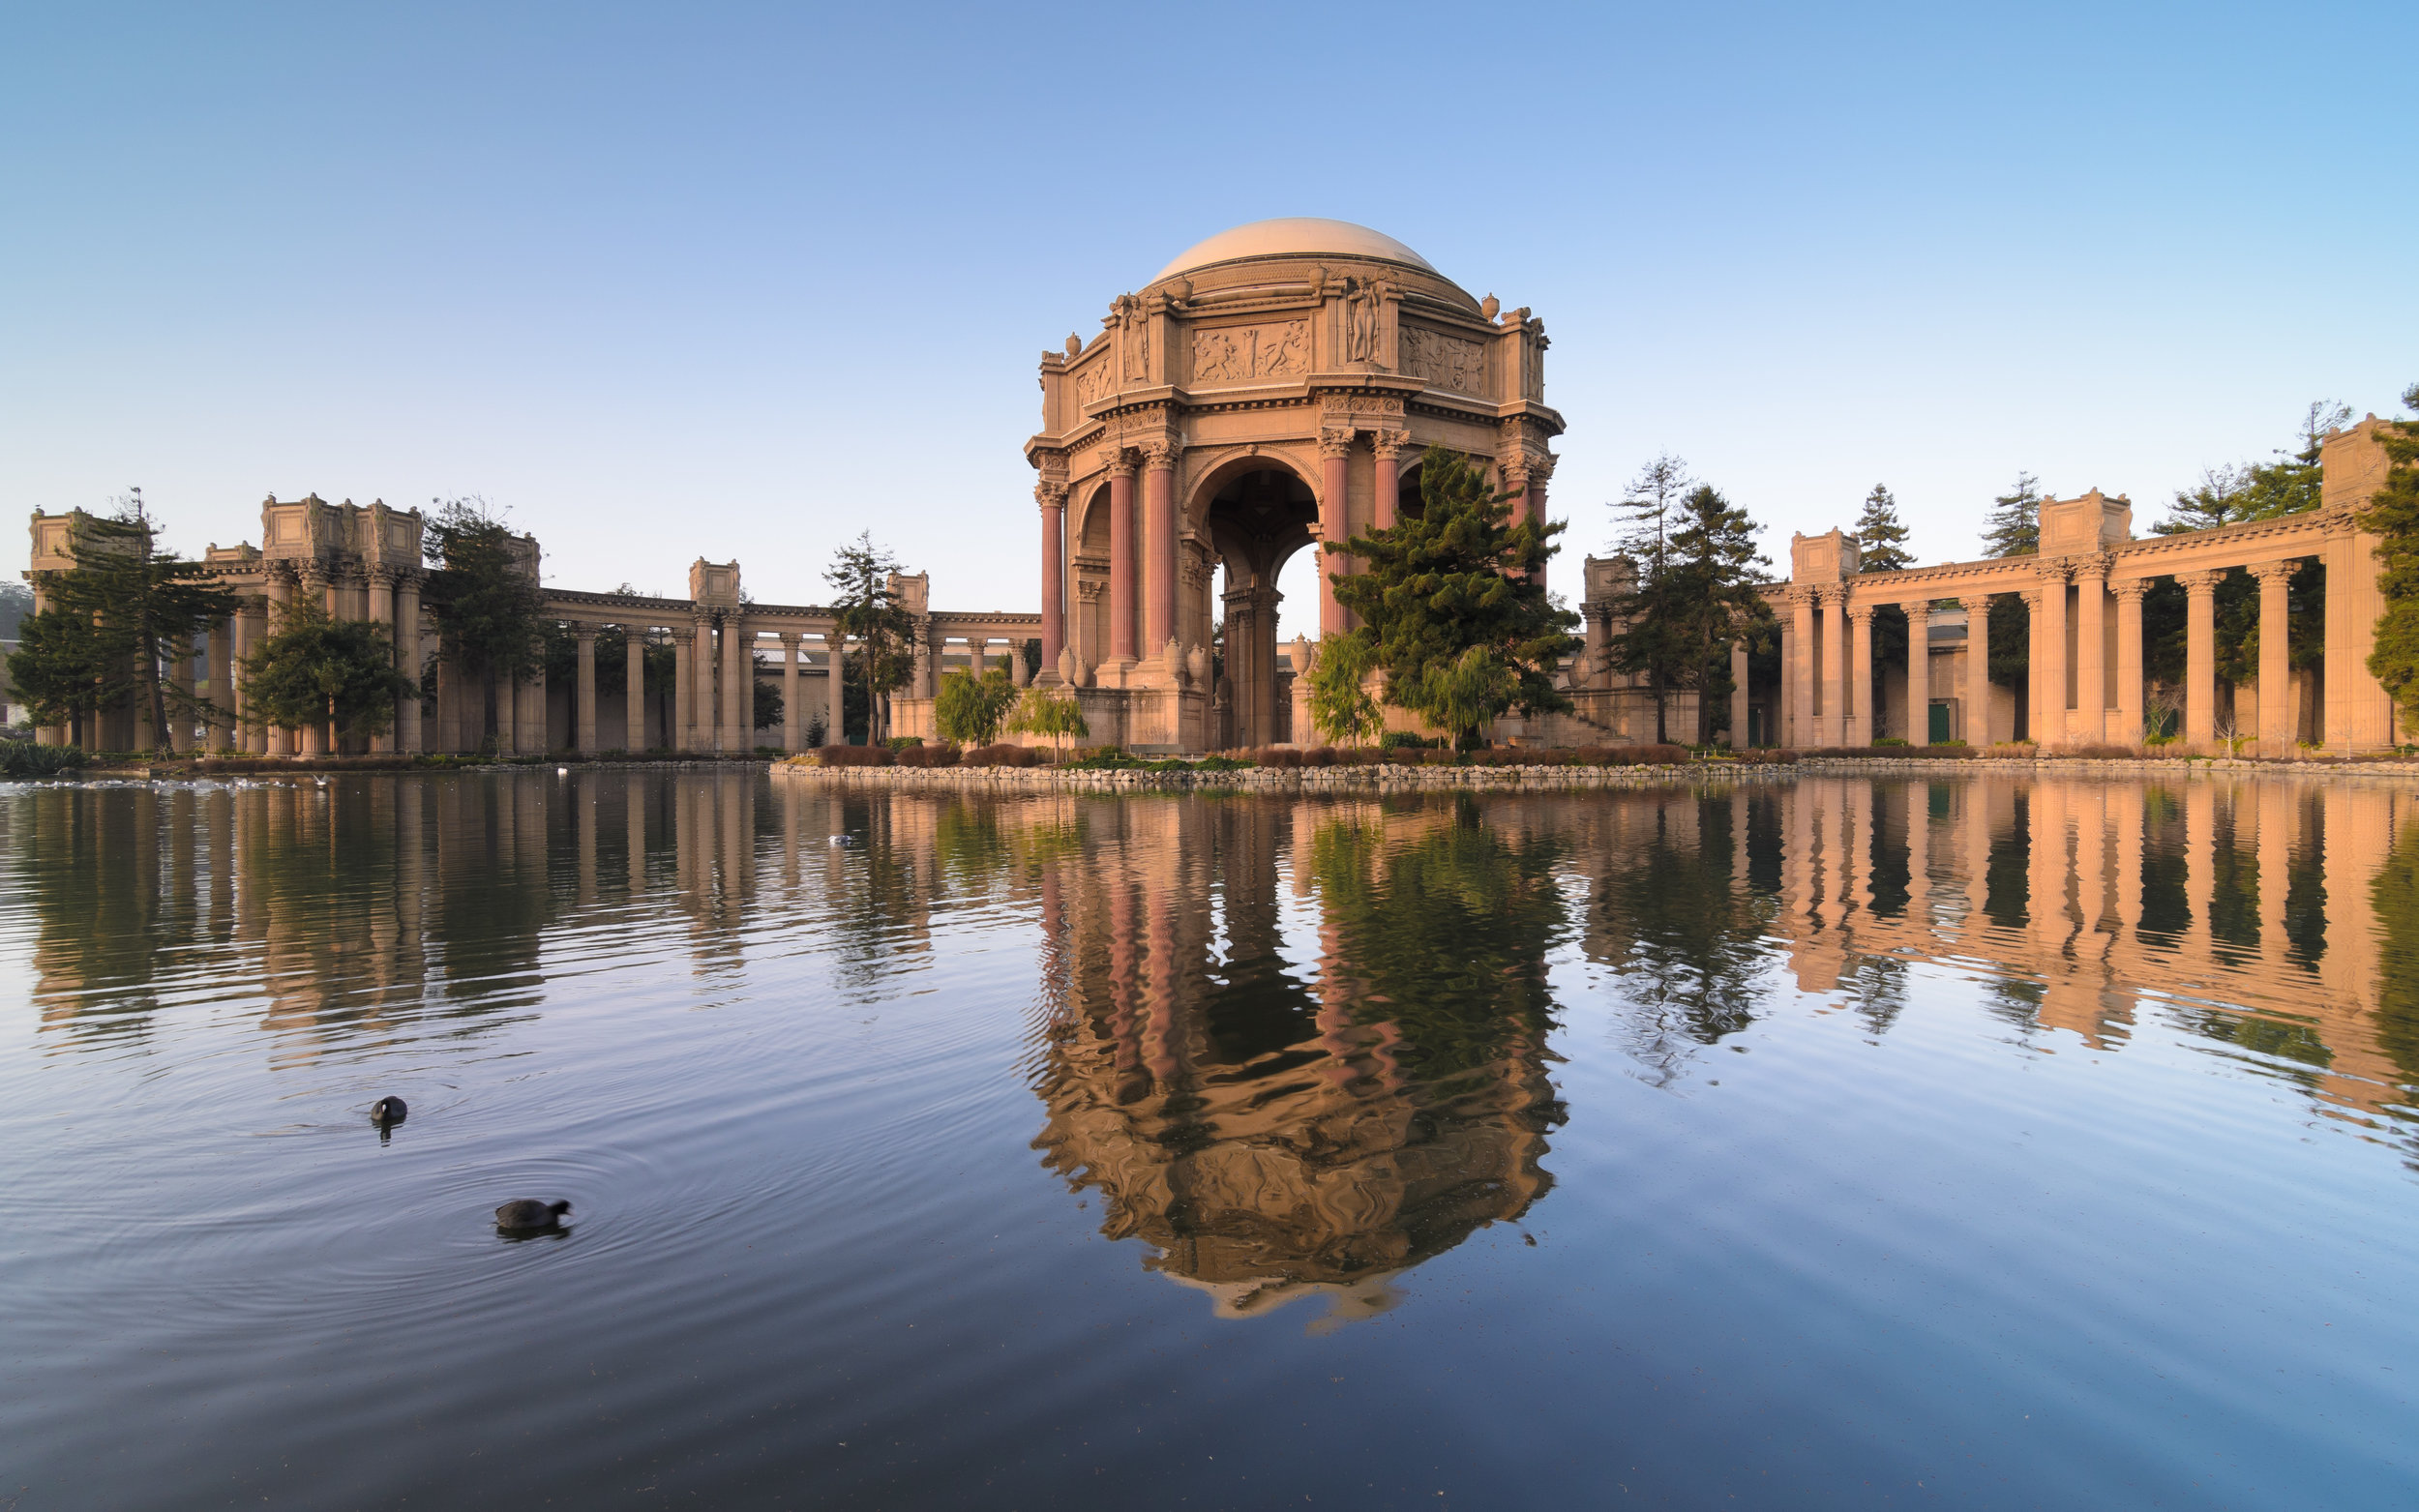 Palace of Fine Arts in San Francisco. Designed by architect, Bernard Maybeck.